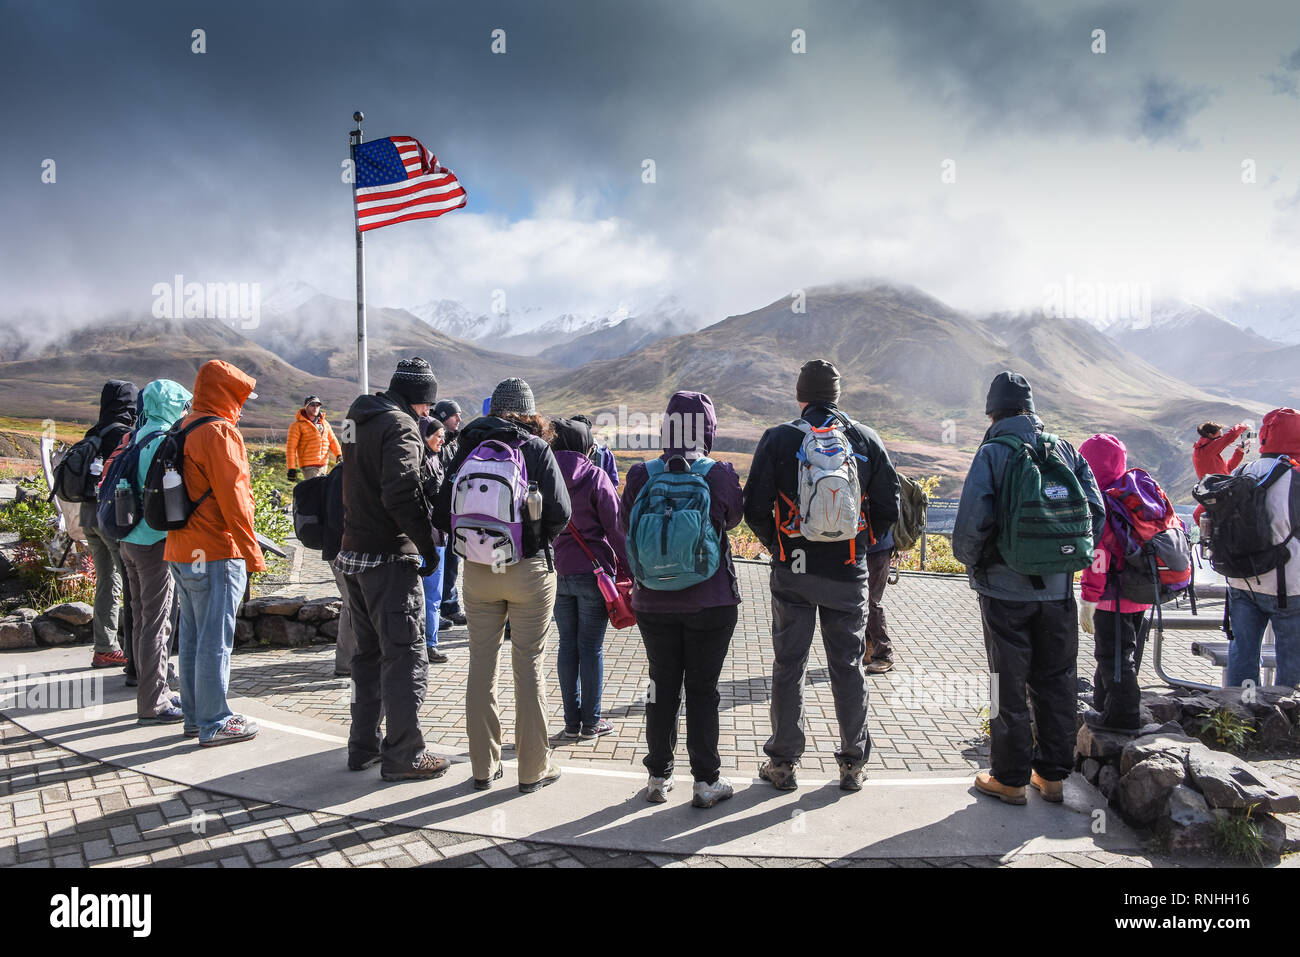 Ranger-guided hike gathers at the flagpole at Eielson Visitor Center, Denali National Park, Alaska, USA - Stock Image